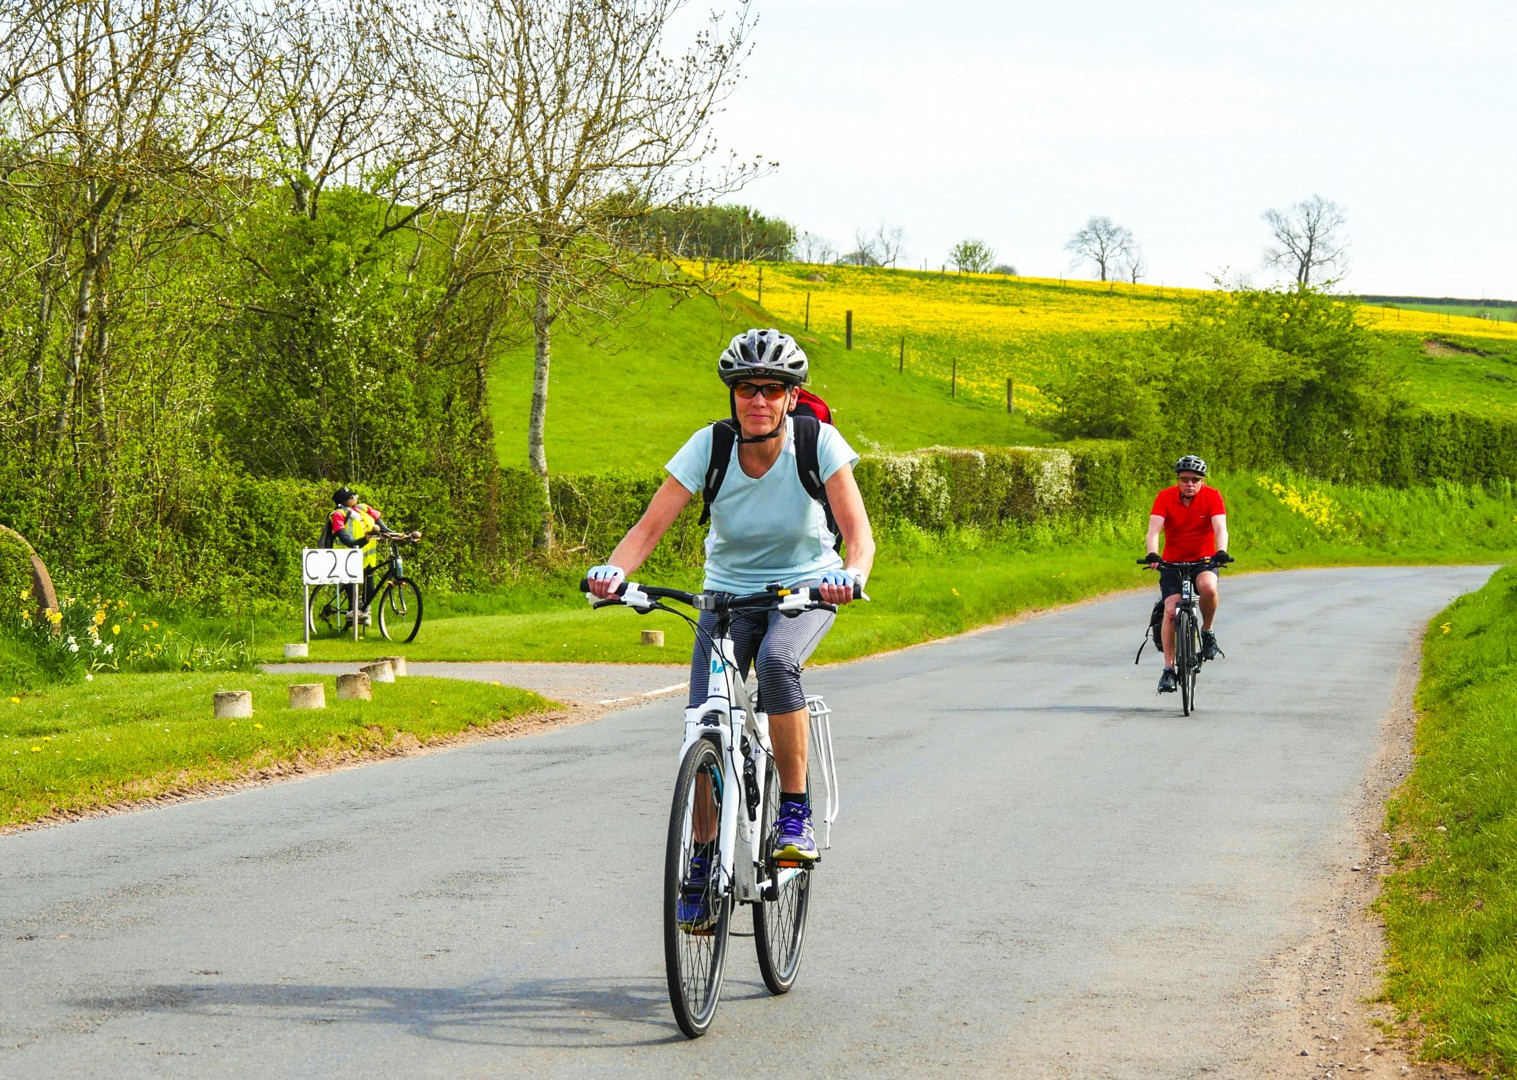 bike-friendly-accommodation-uk-coast-to-coast-route.jpg - UK - C2C - Coast to Coast 5 Days Cycling - Self-Guided Leisure Cycling Holiday - Leisure Cycling